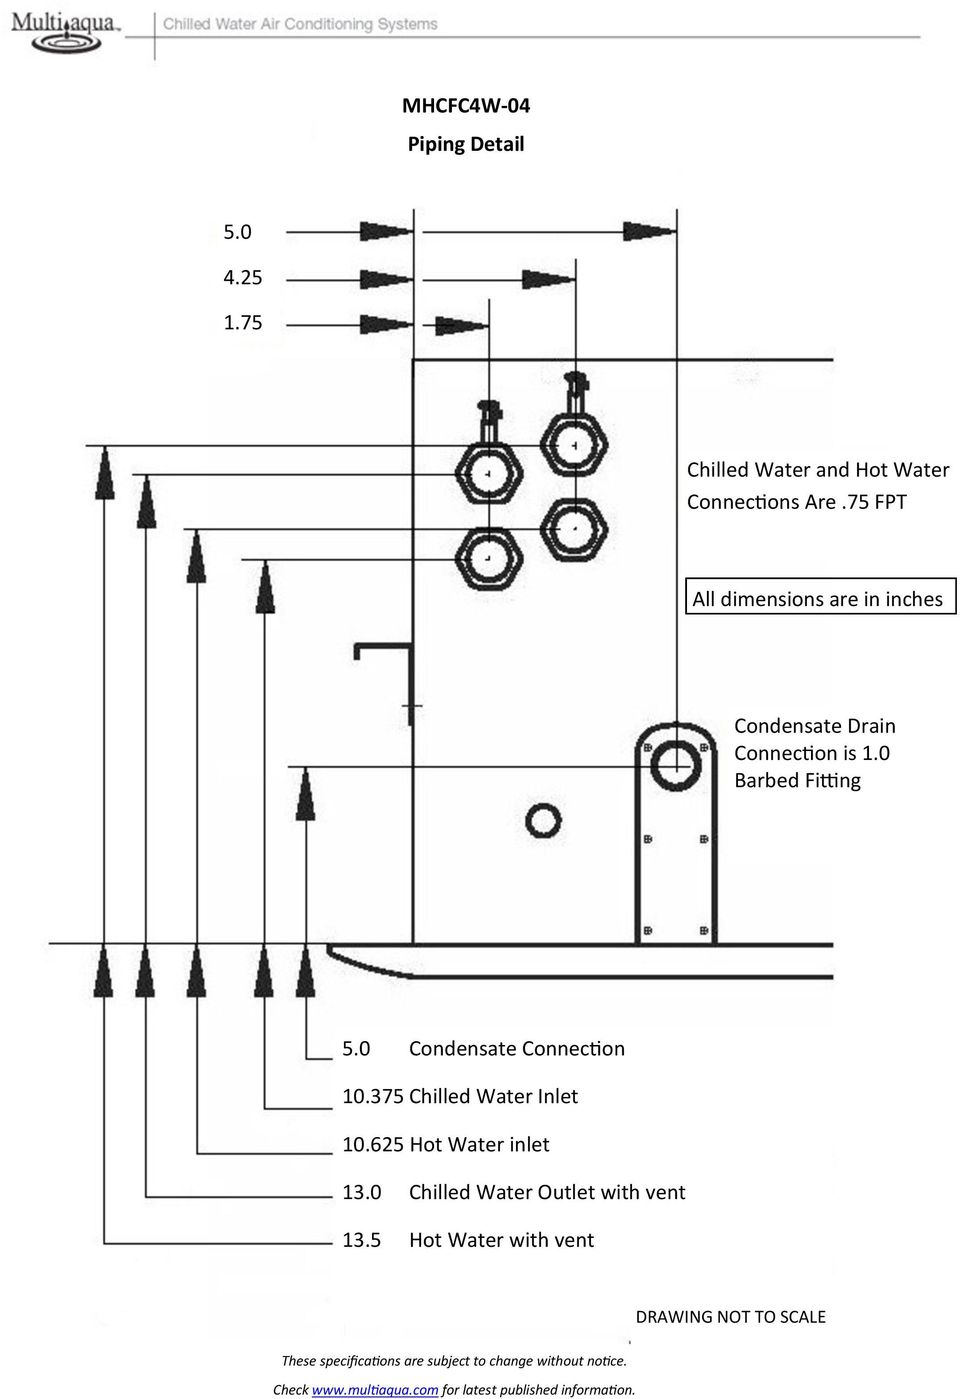 75 FPT All dimensions are in inches Condensate Drain Connection is 1.